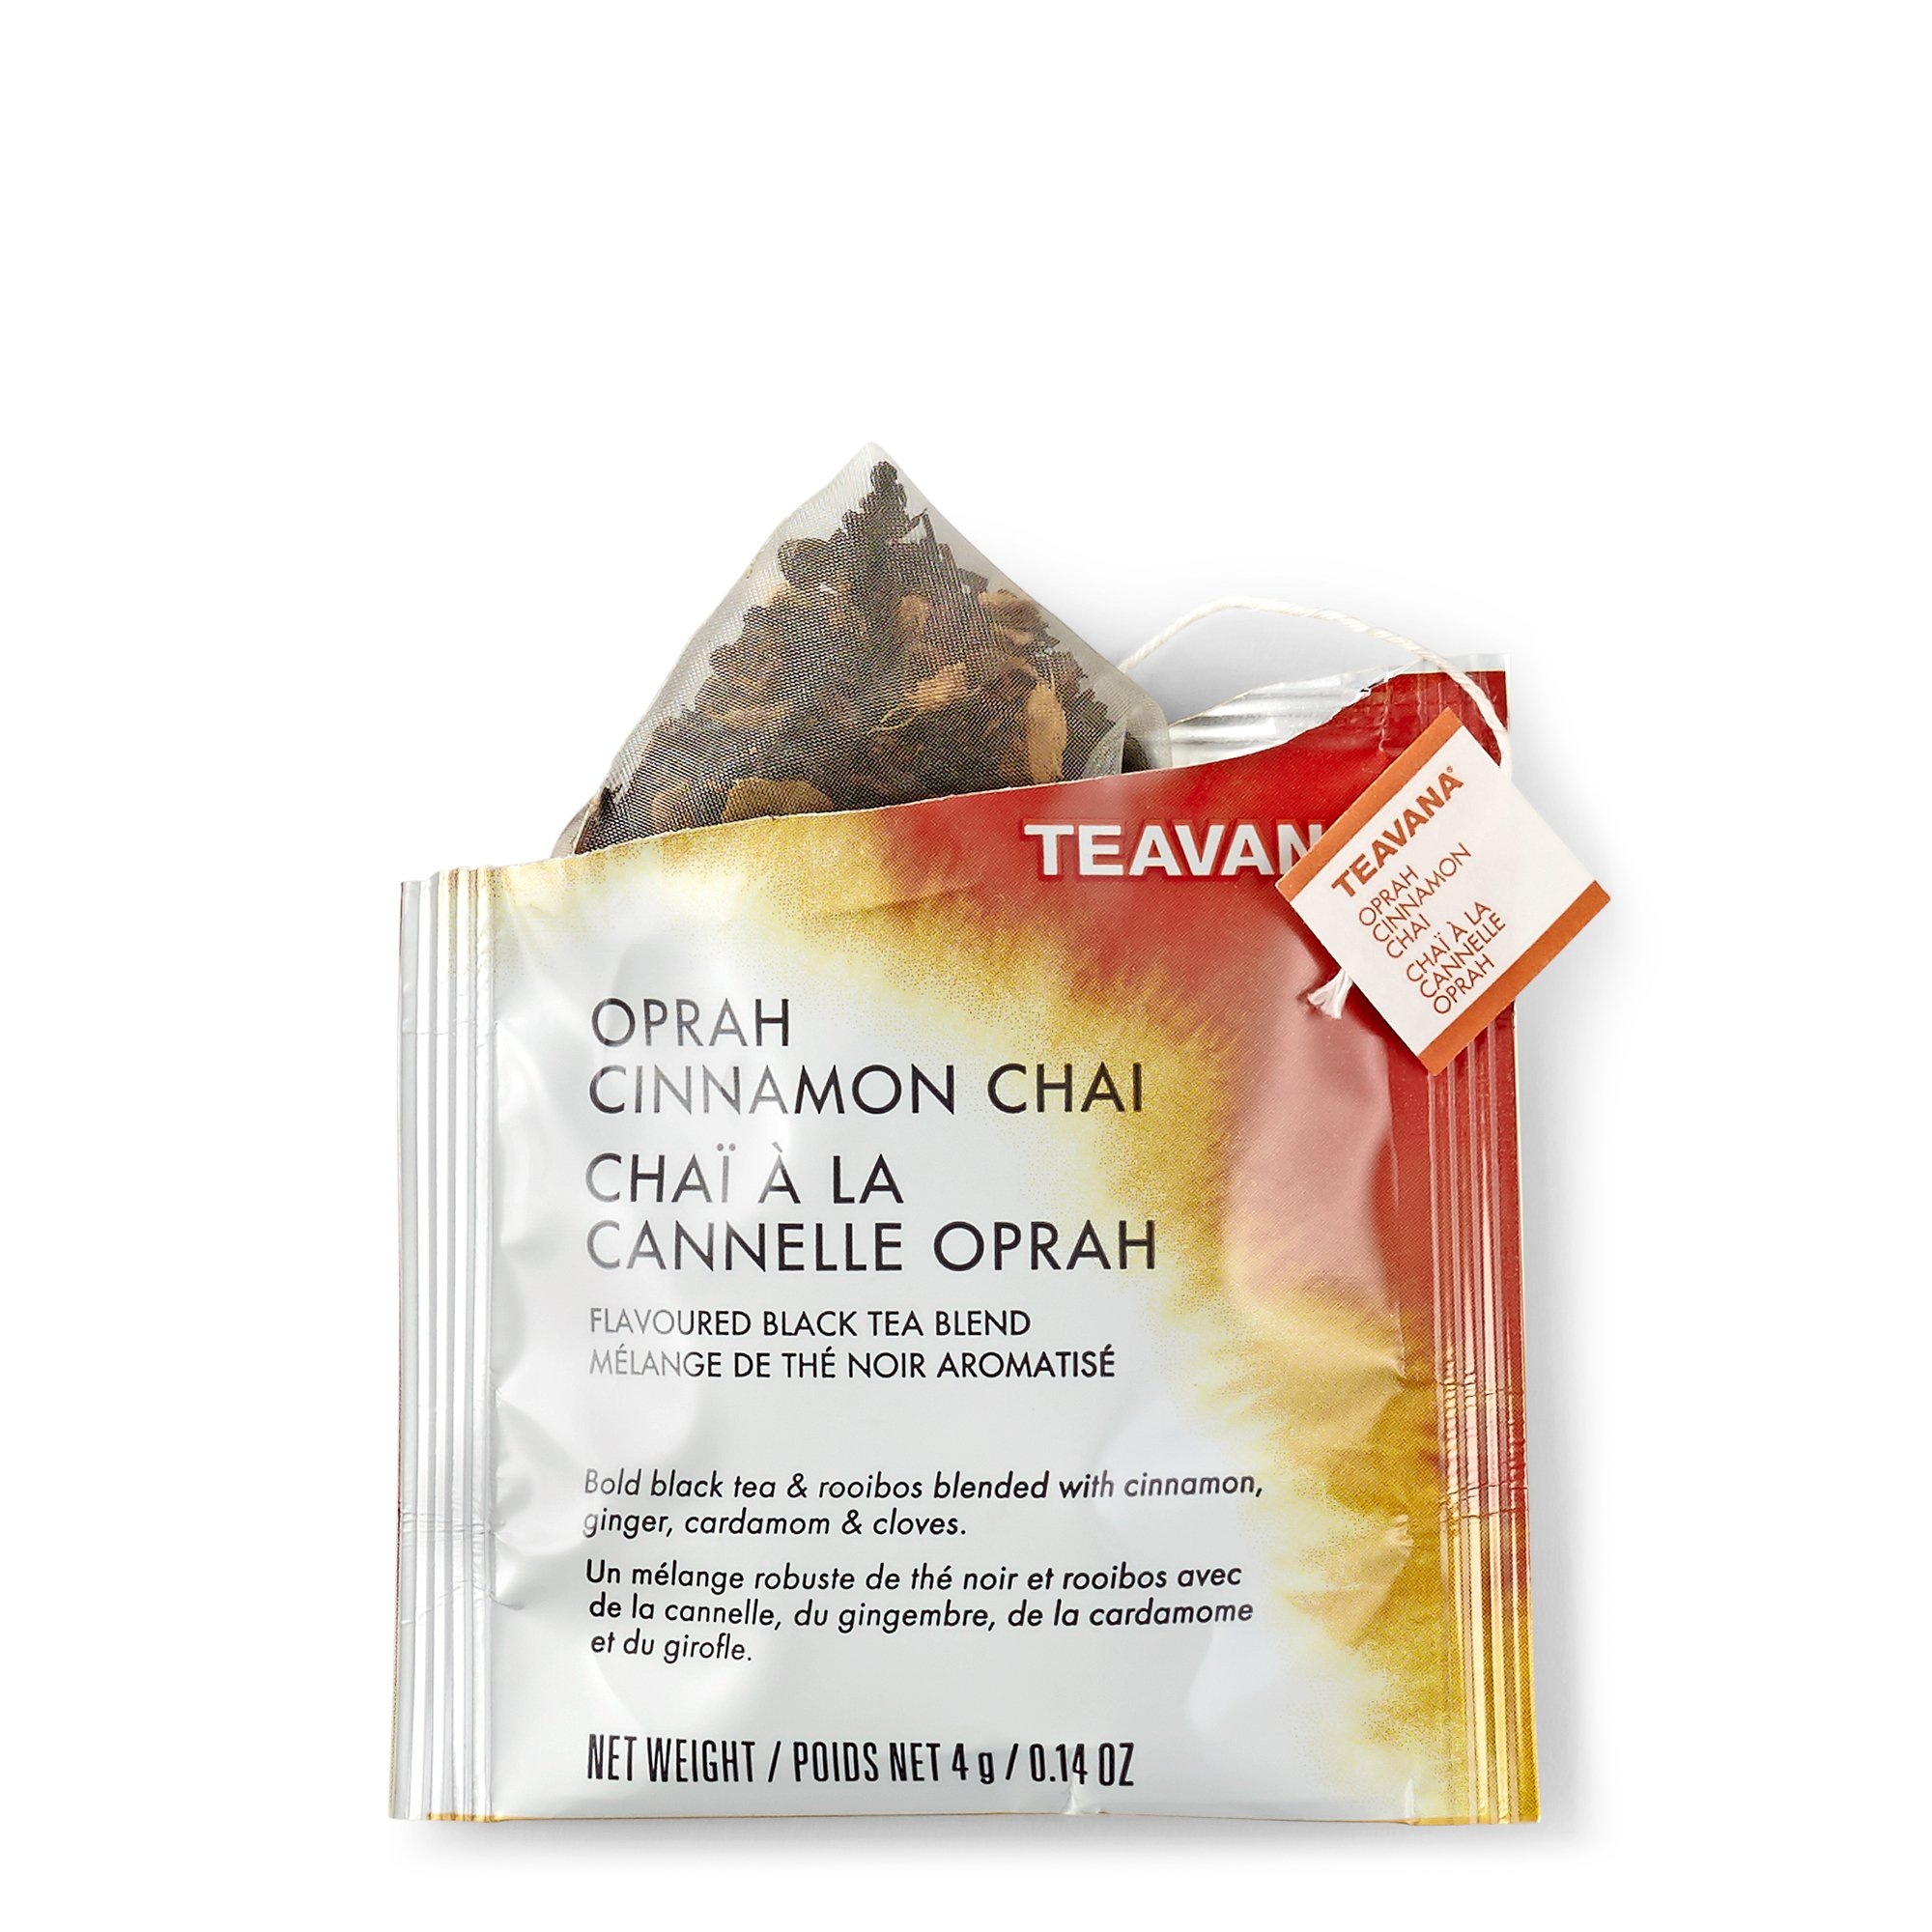 Teavana Oprah Cinnamon Chai Full Leaf Sachets by Starbucks